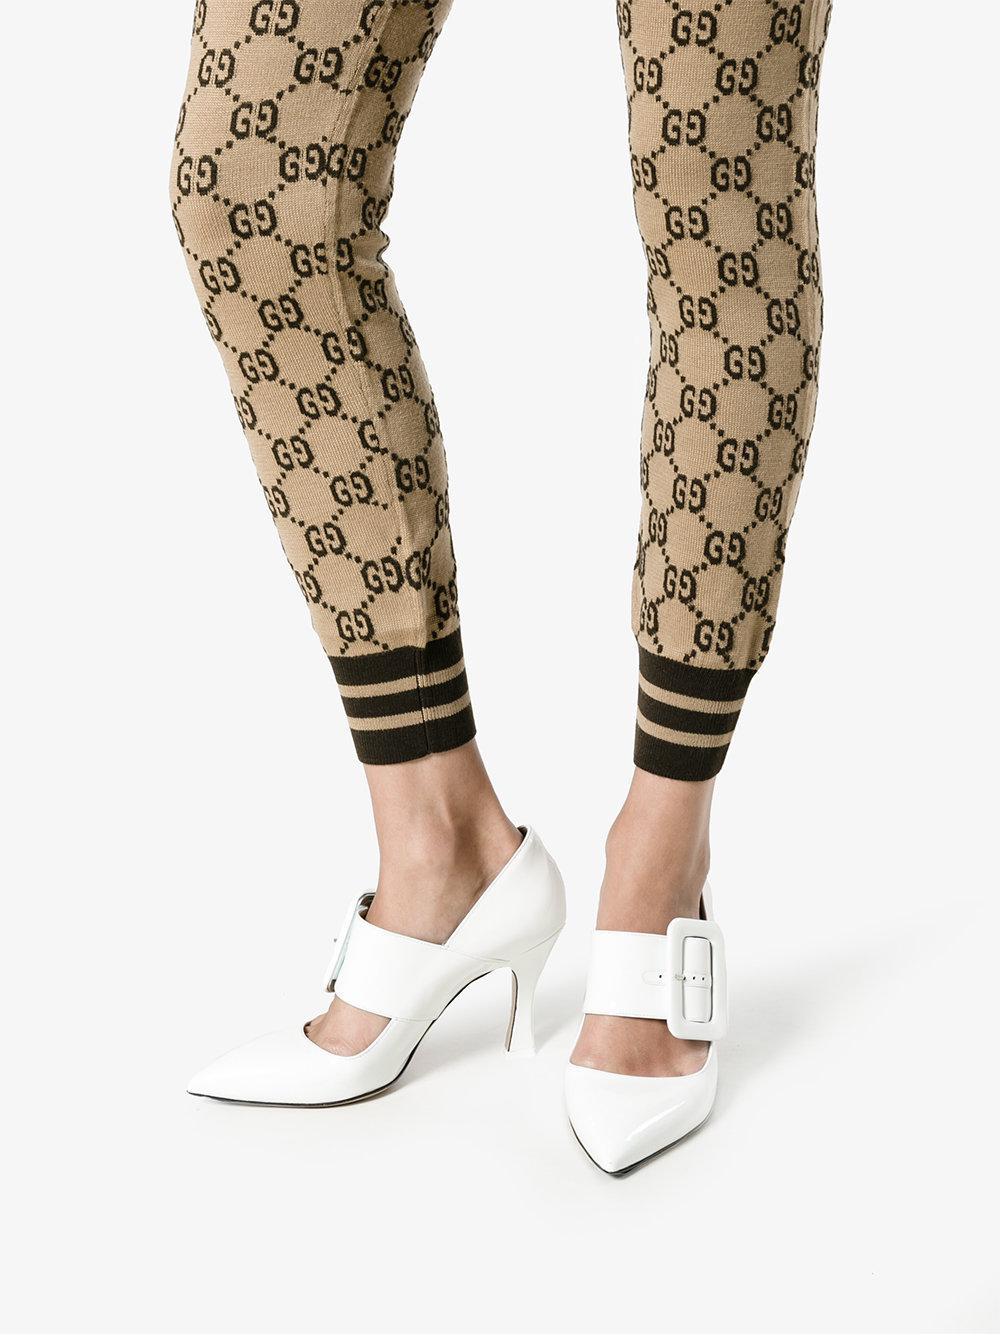 49a97f62c9282 Gucci Logo Intarsia Knitted Leggings in Brown - Lyst